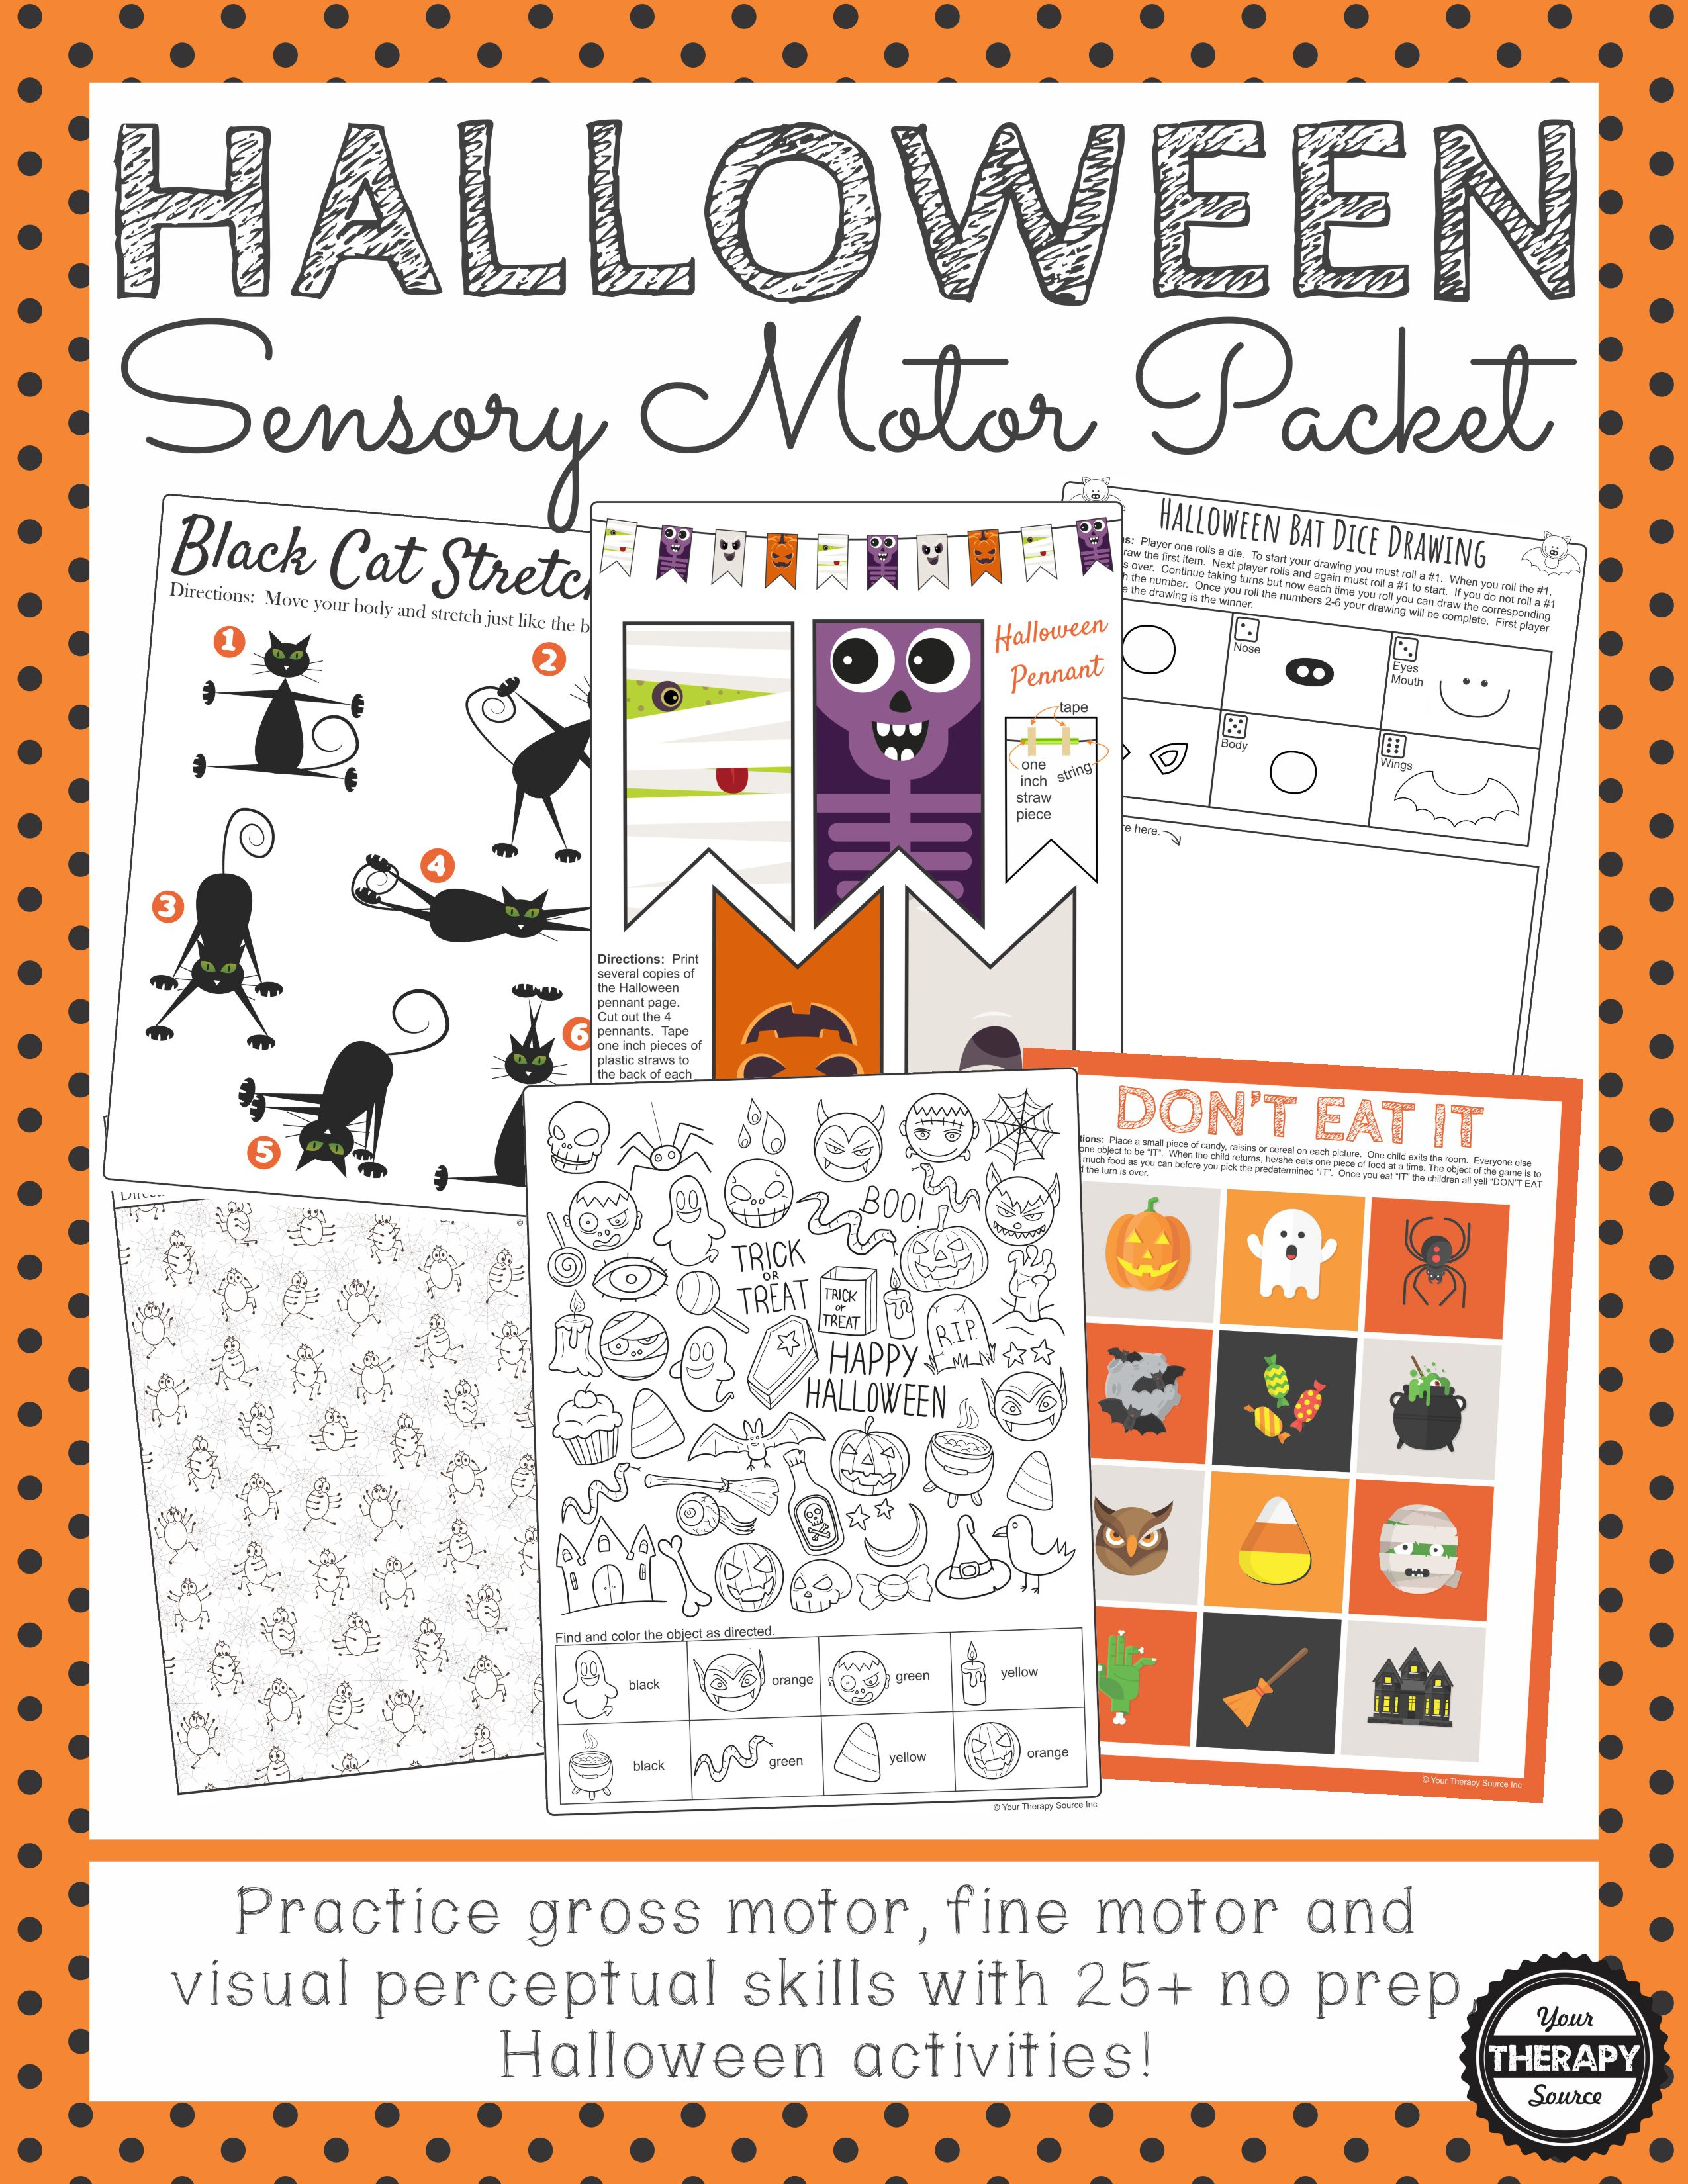 Halloween Sensory Motor Packet